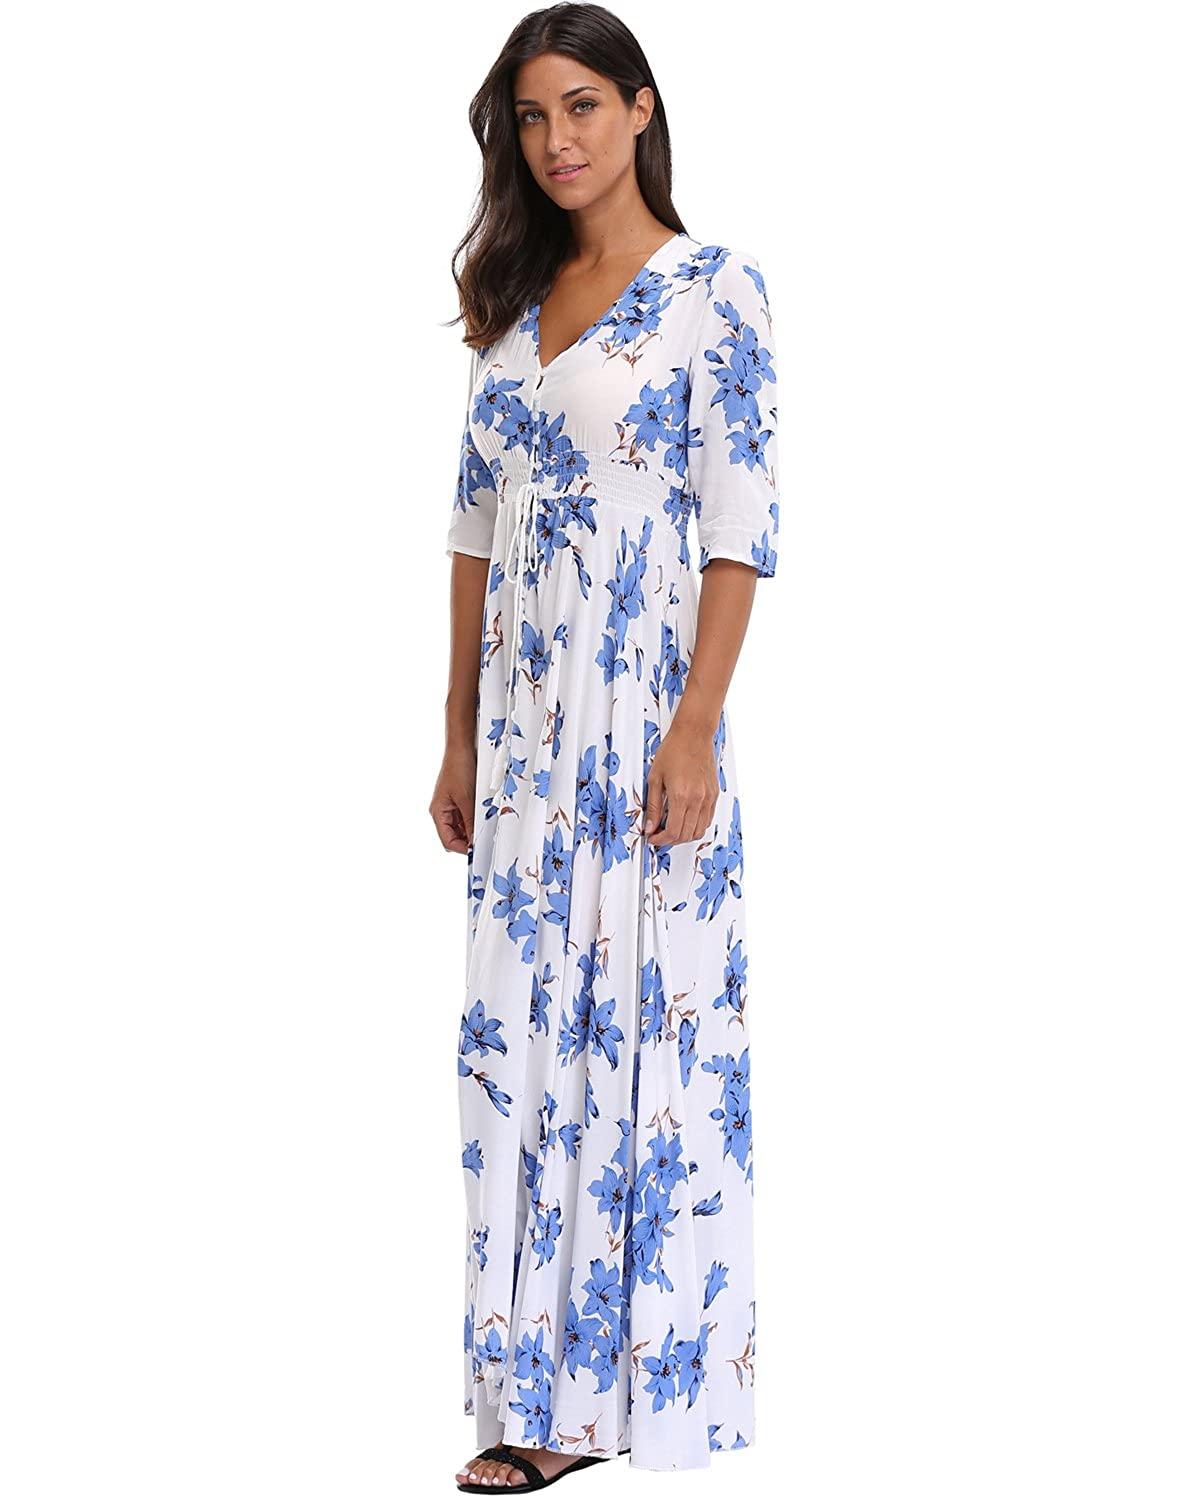 72adddd3782 Summer Floral Print Maxi Dress Women Button Up Split Long Flowy Bohemian  Beach Party Dresses at Amazon Women s Clothing store